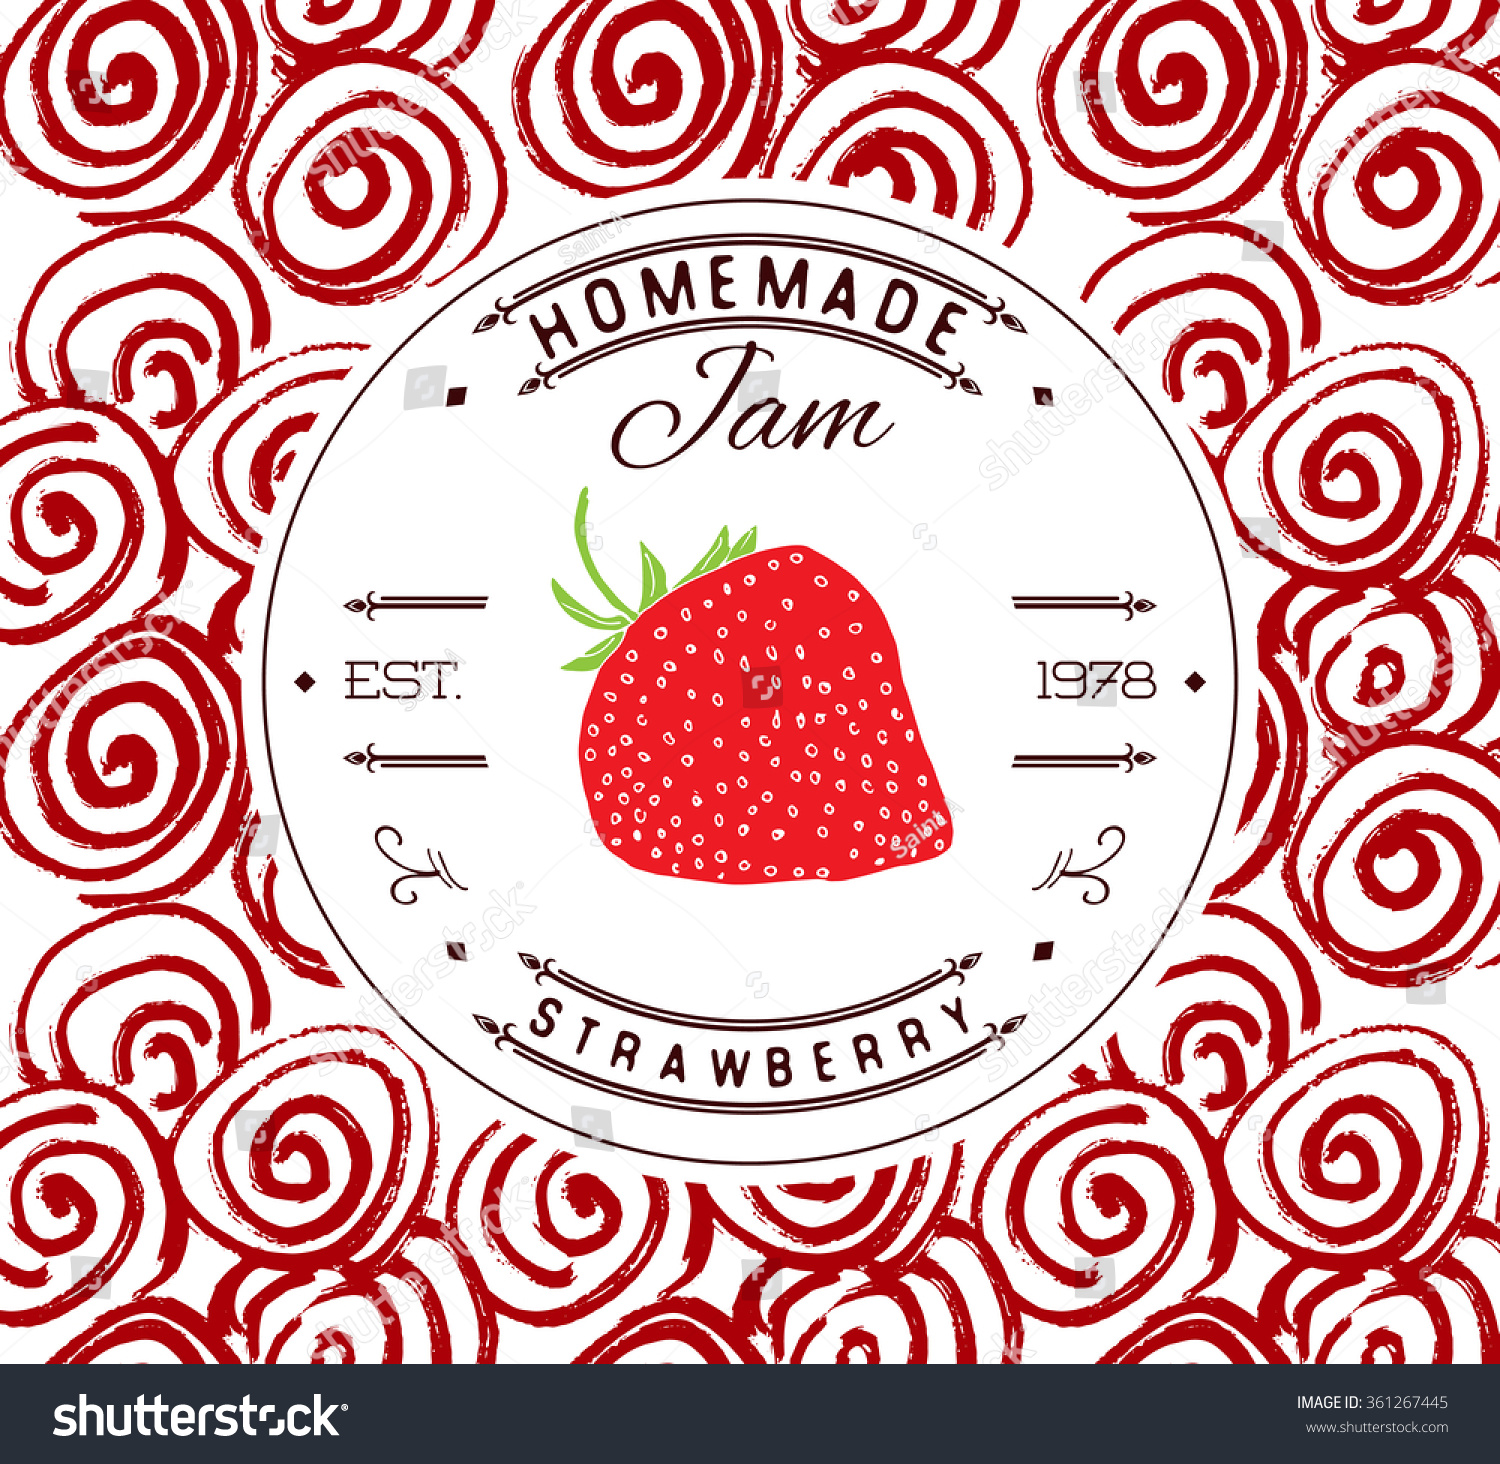 Jam label design template strawberry dessert stock vector for Jelly jar label template